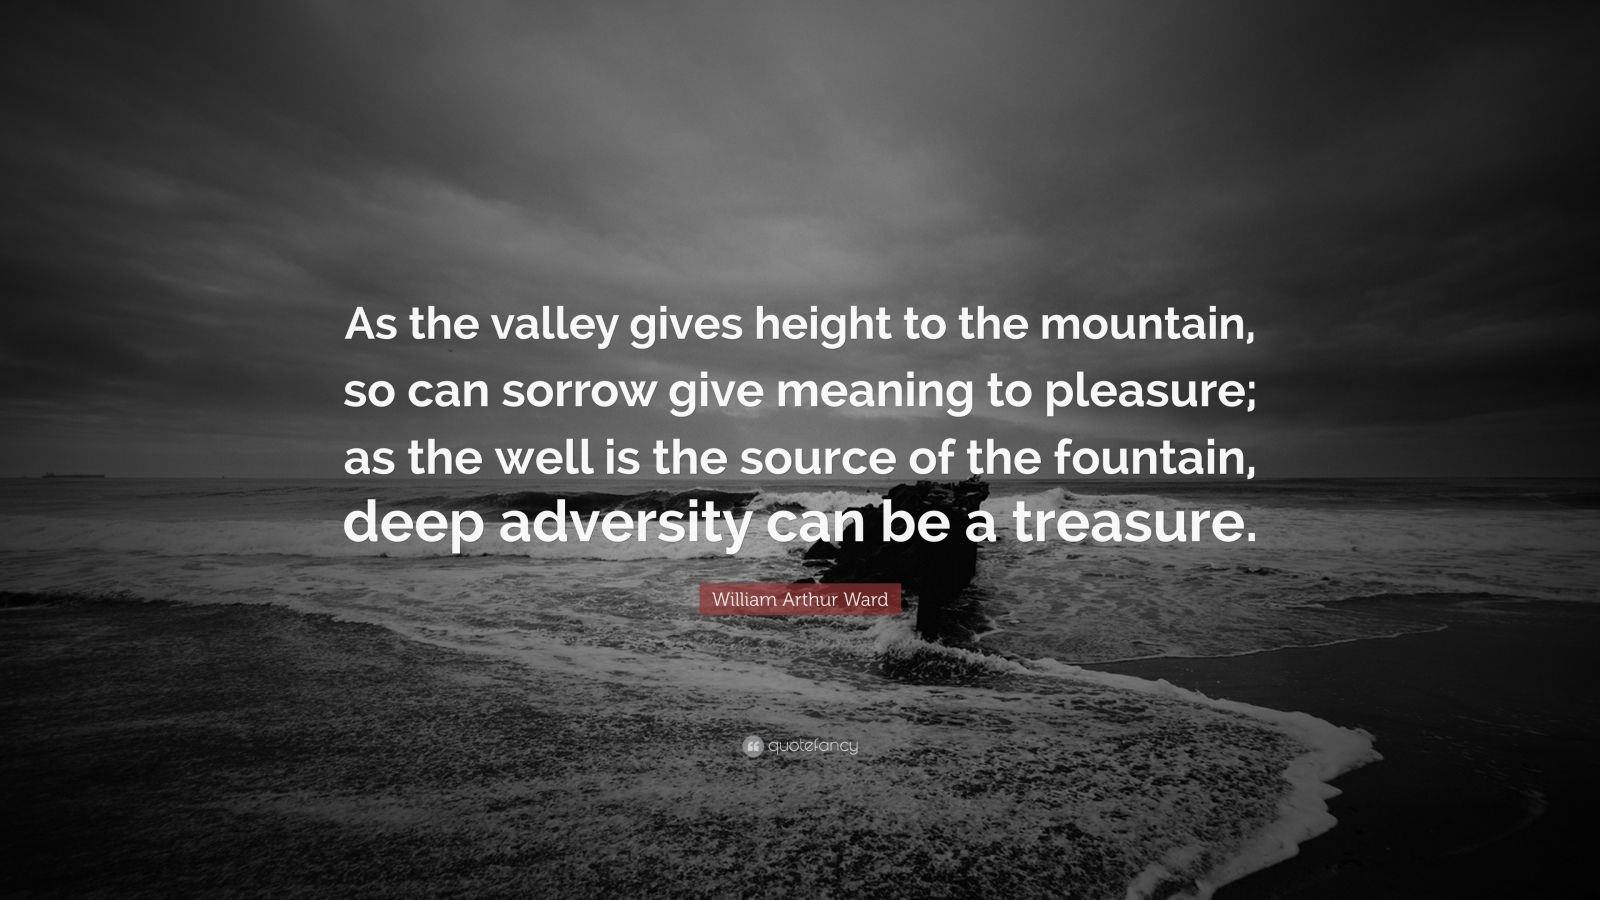 "William Arthur Ward Quote: ""As the valley gives height to the mountain, so can sorrow give meaning to pleasure; as the well is the source of the fountain, deep adversity can be a treasure."""